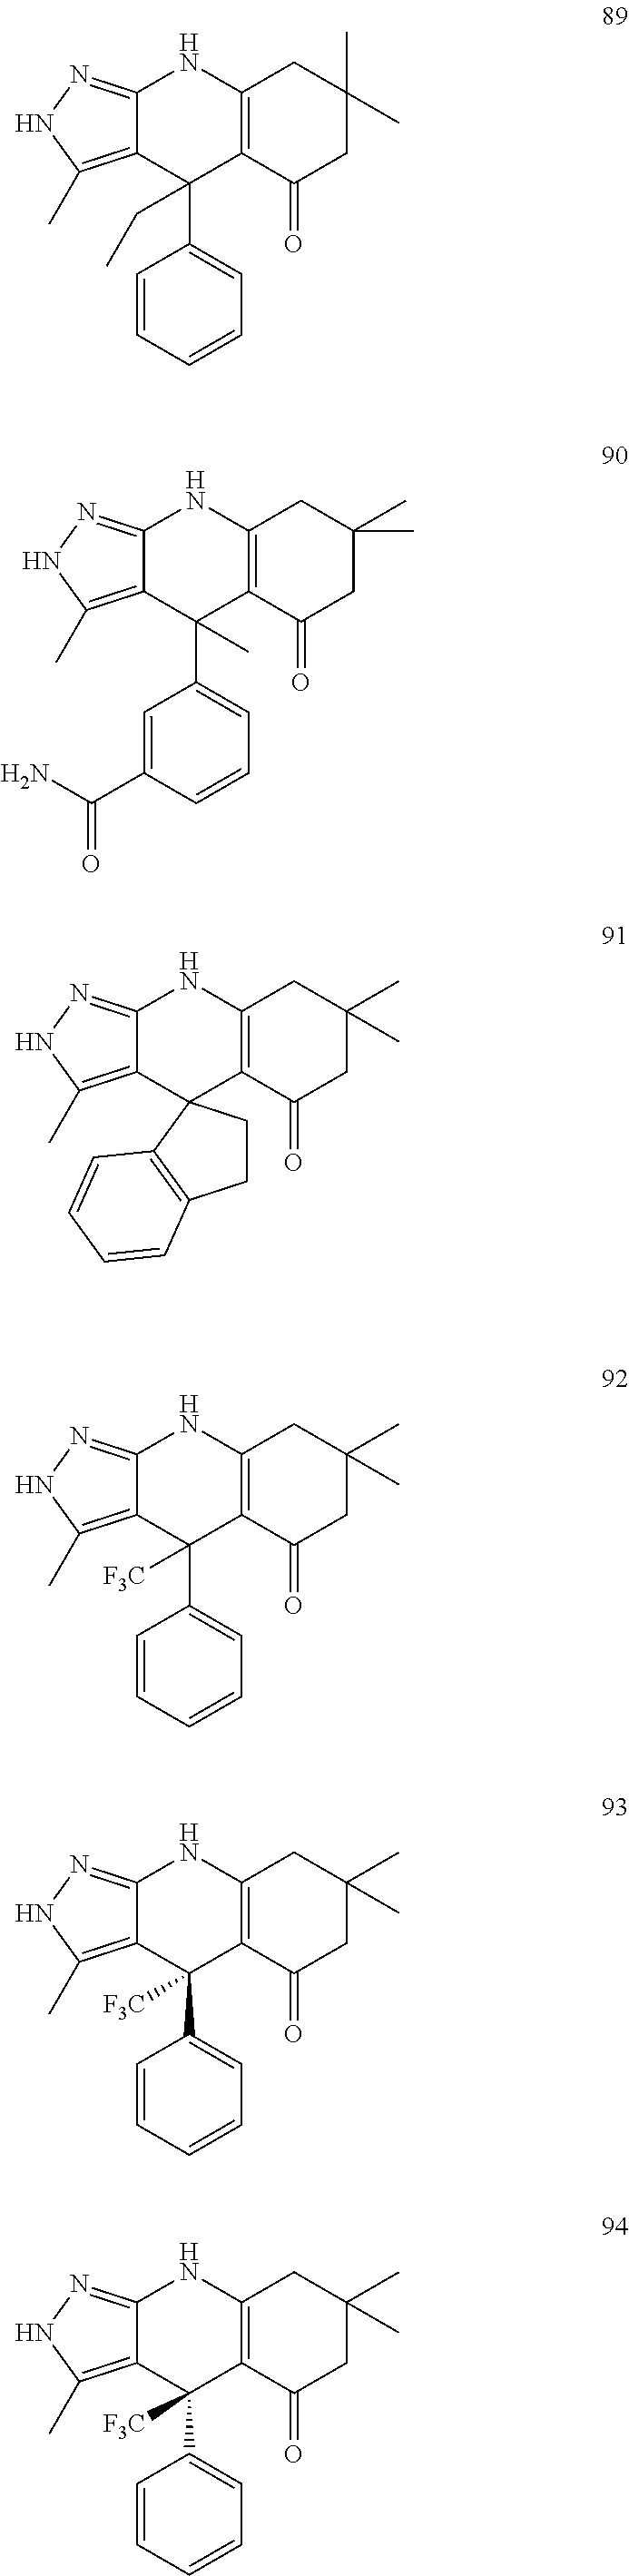 Us9096594b2 Kinase Inhibitors And Methods Of Use Thereof Google Rsk2 Switch Wiring Diagram Figure Us09096594 20150804 C00024